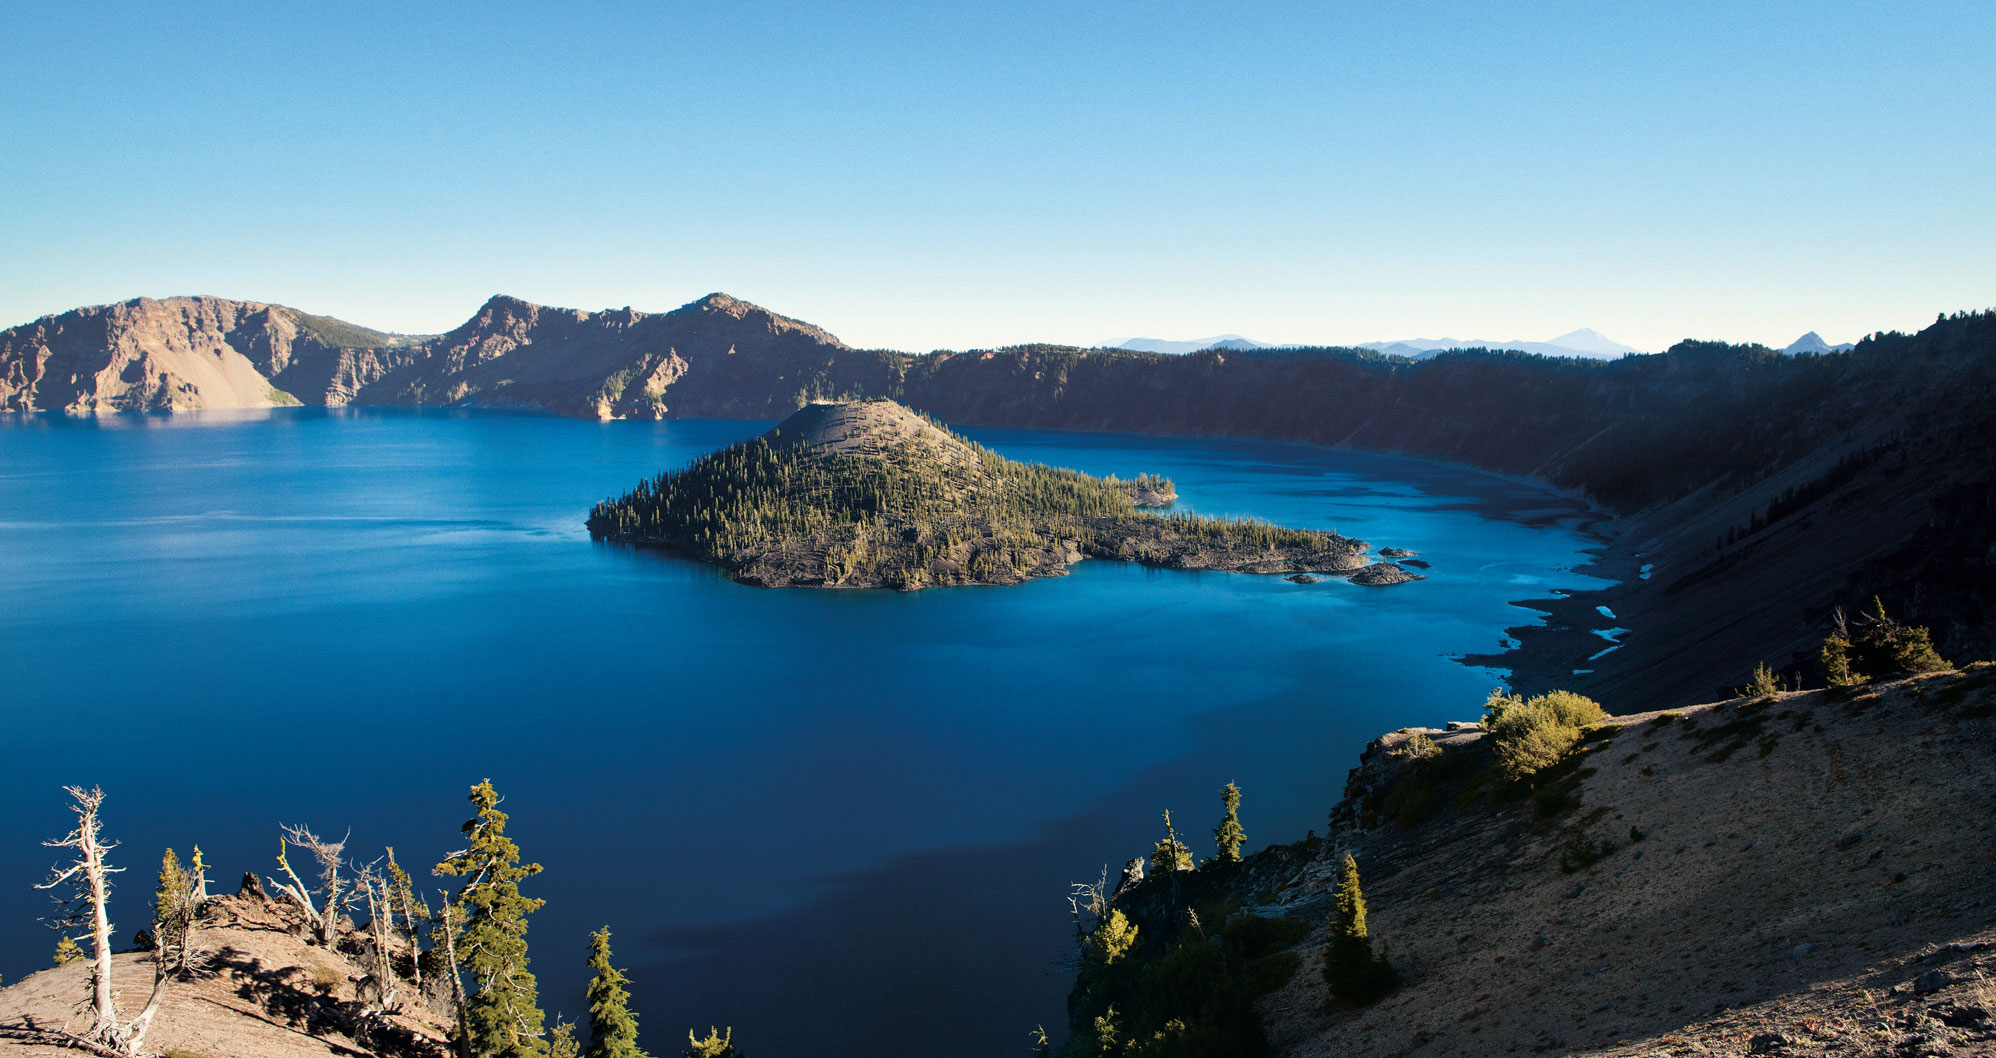 Crater Lake by Chantal Anderson